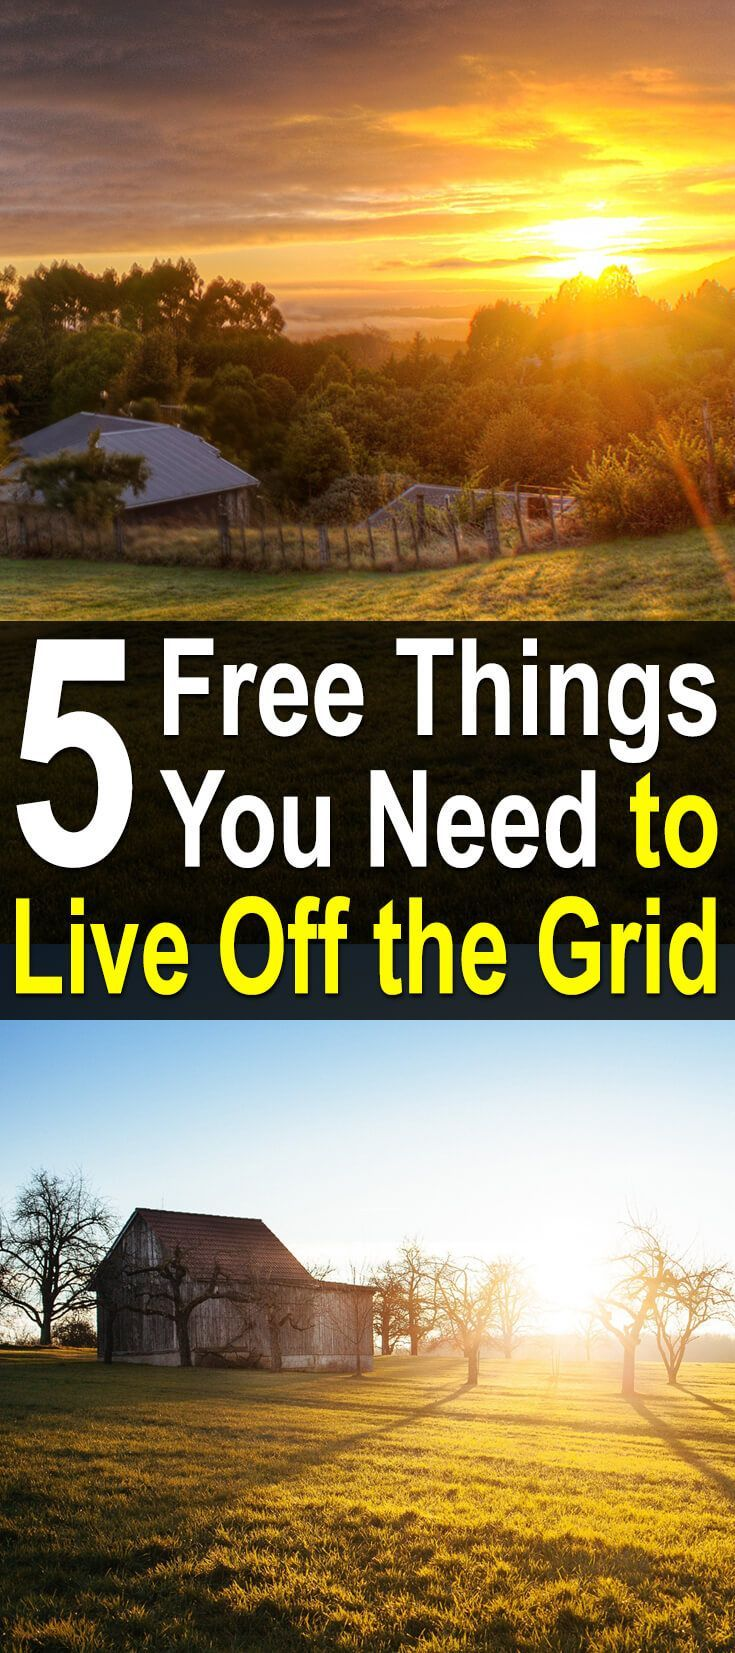 5 Free Things You Need to Live Off the Grid. I found this video very interesting and inspiring, so I want to share it with you guys. It's by Off Grid With Doug & Stacy and it covers some of the traits you need to have if you want to live off the grid. #Homesteadsurvivalsite #Livingoffthegrid #Offthegridtraits